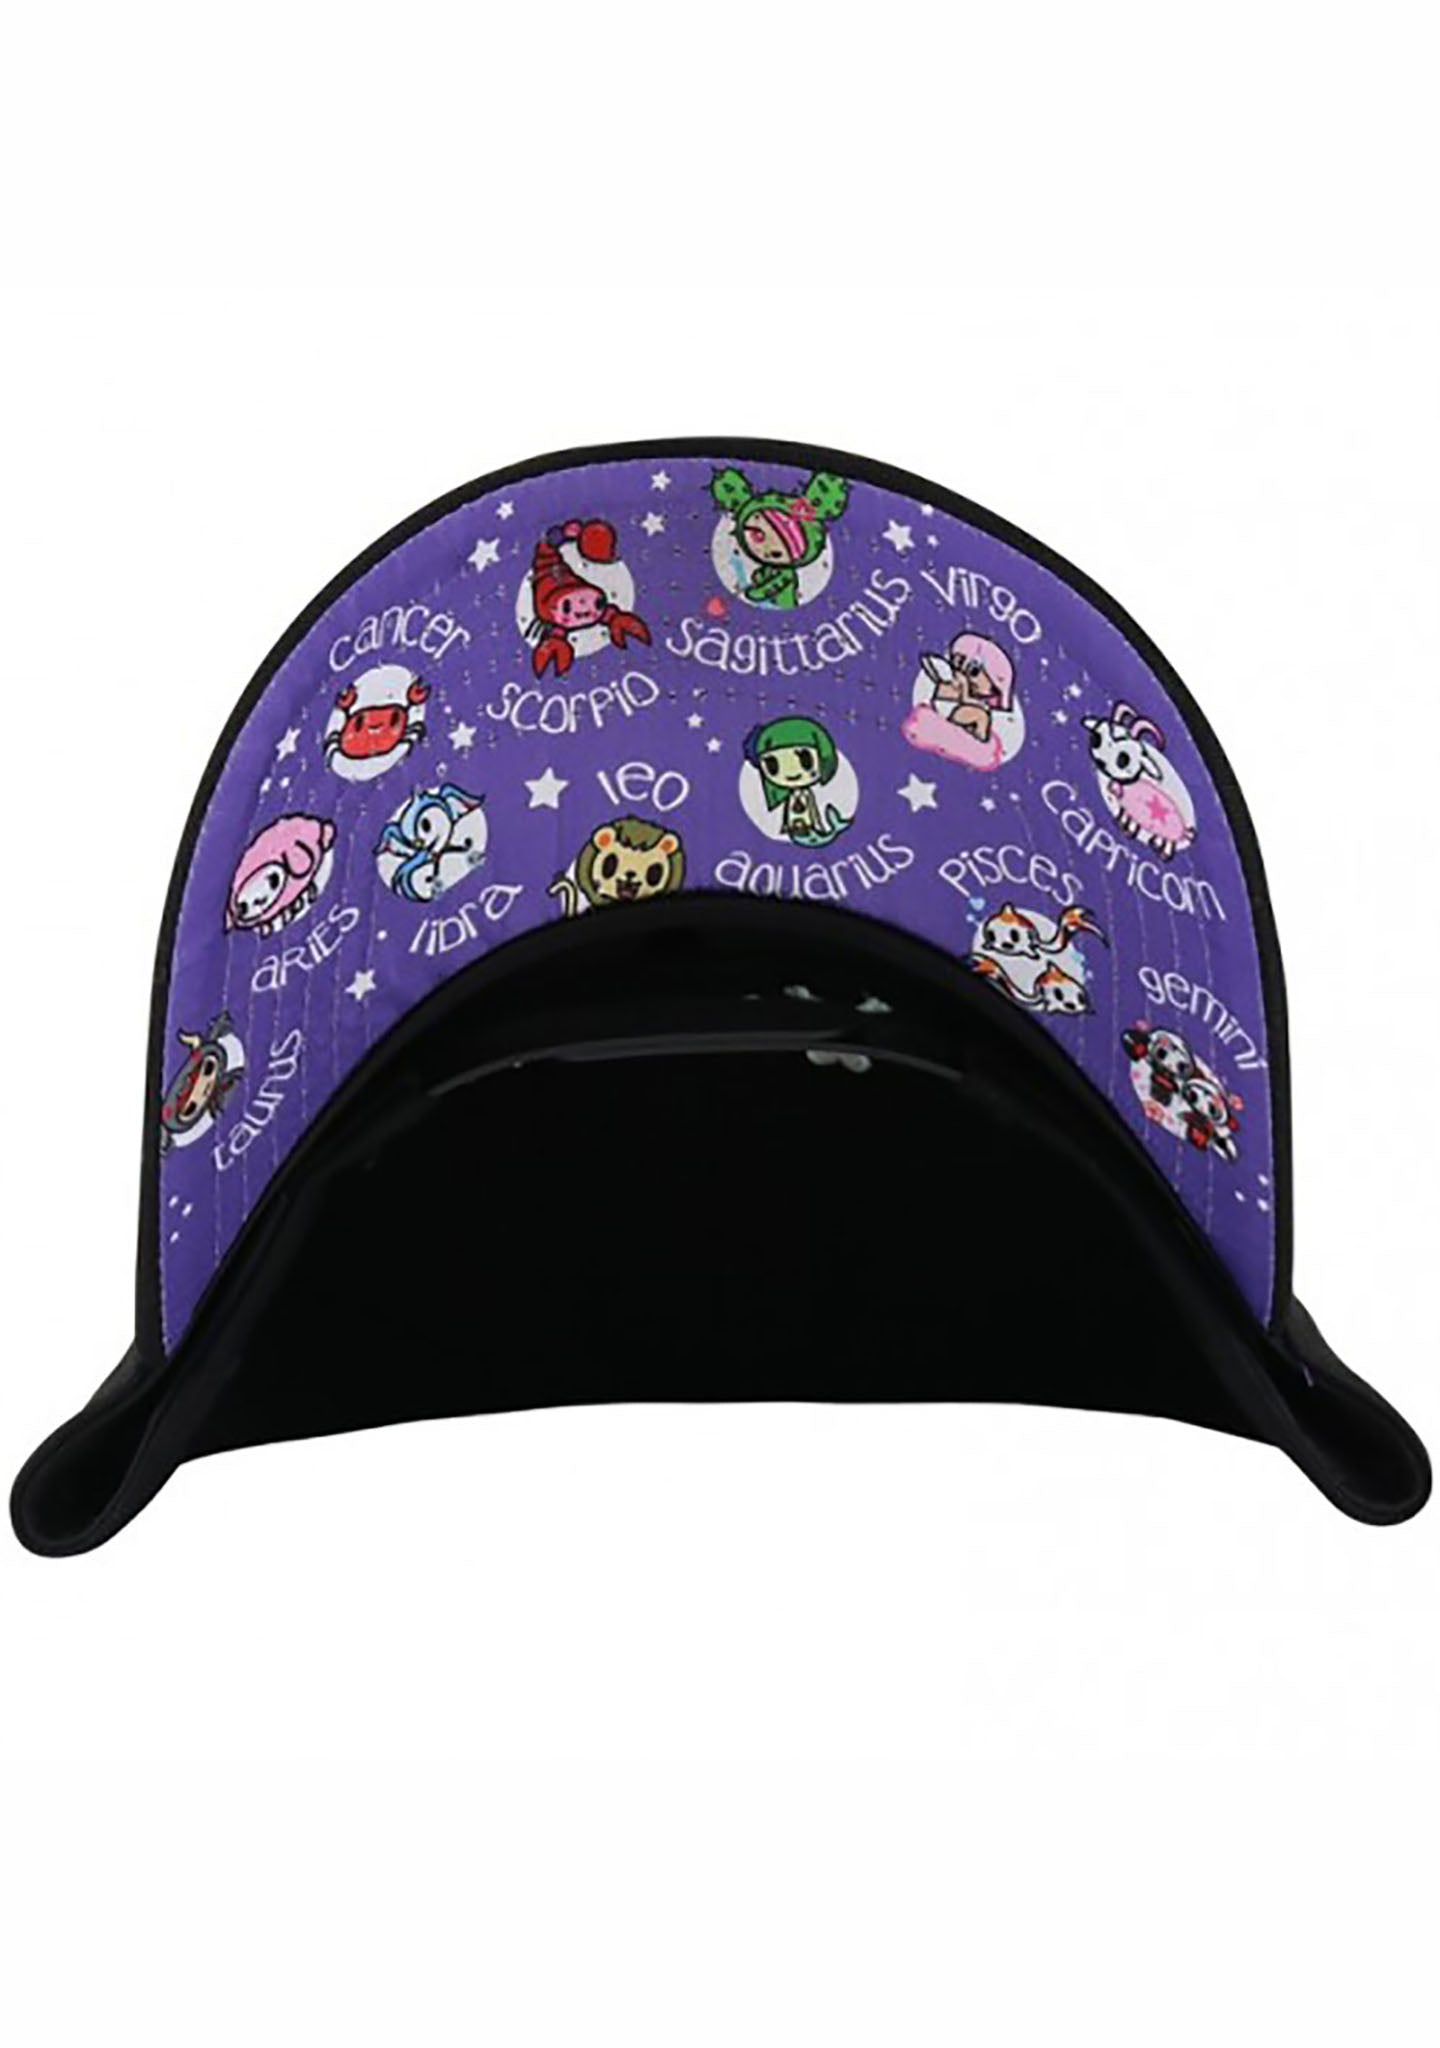 Astrological Snapback Hat